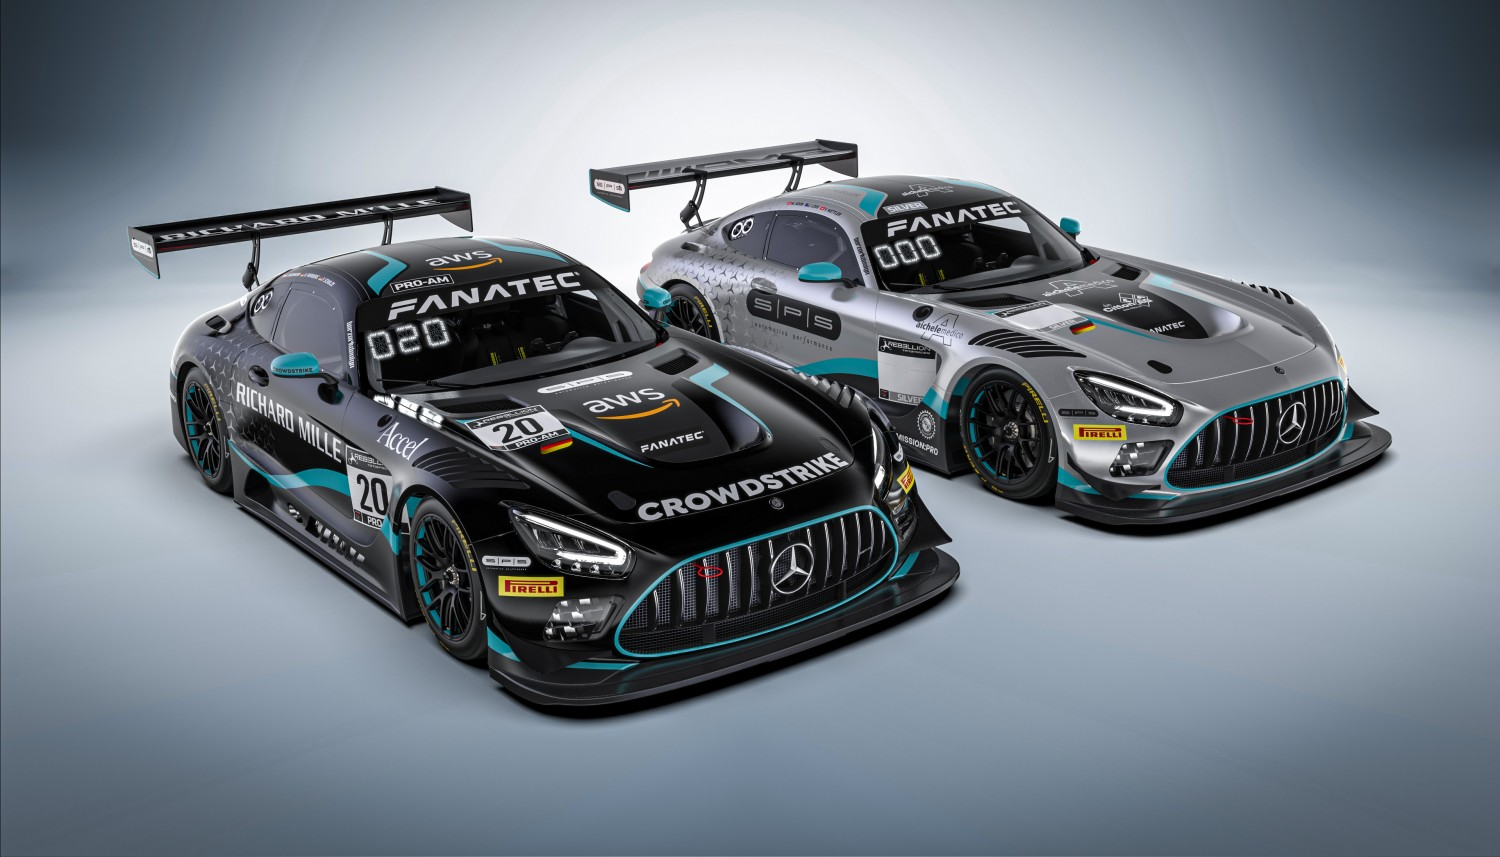 Mercedes-AMG squad SPS automotive performance commits to Endurance and Sprint in 2021